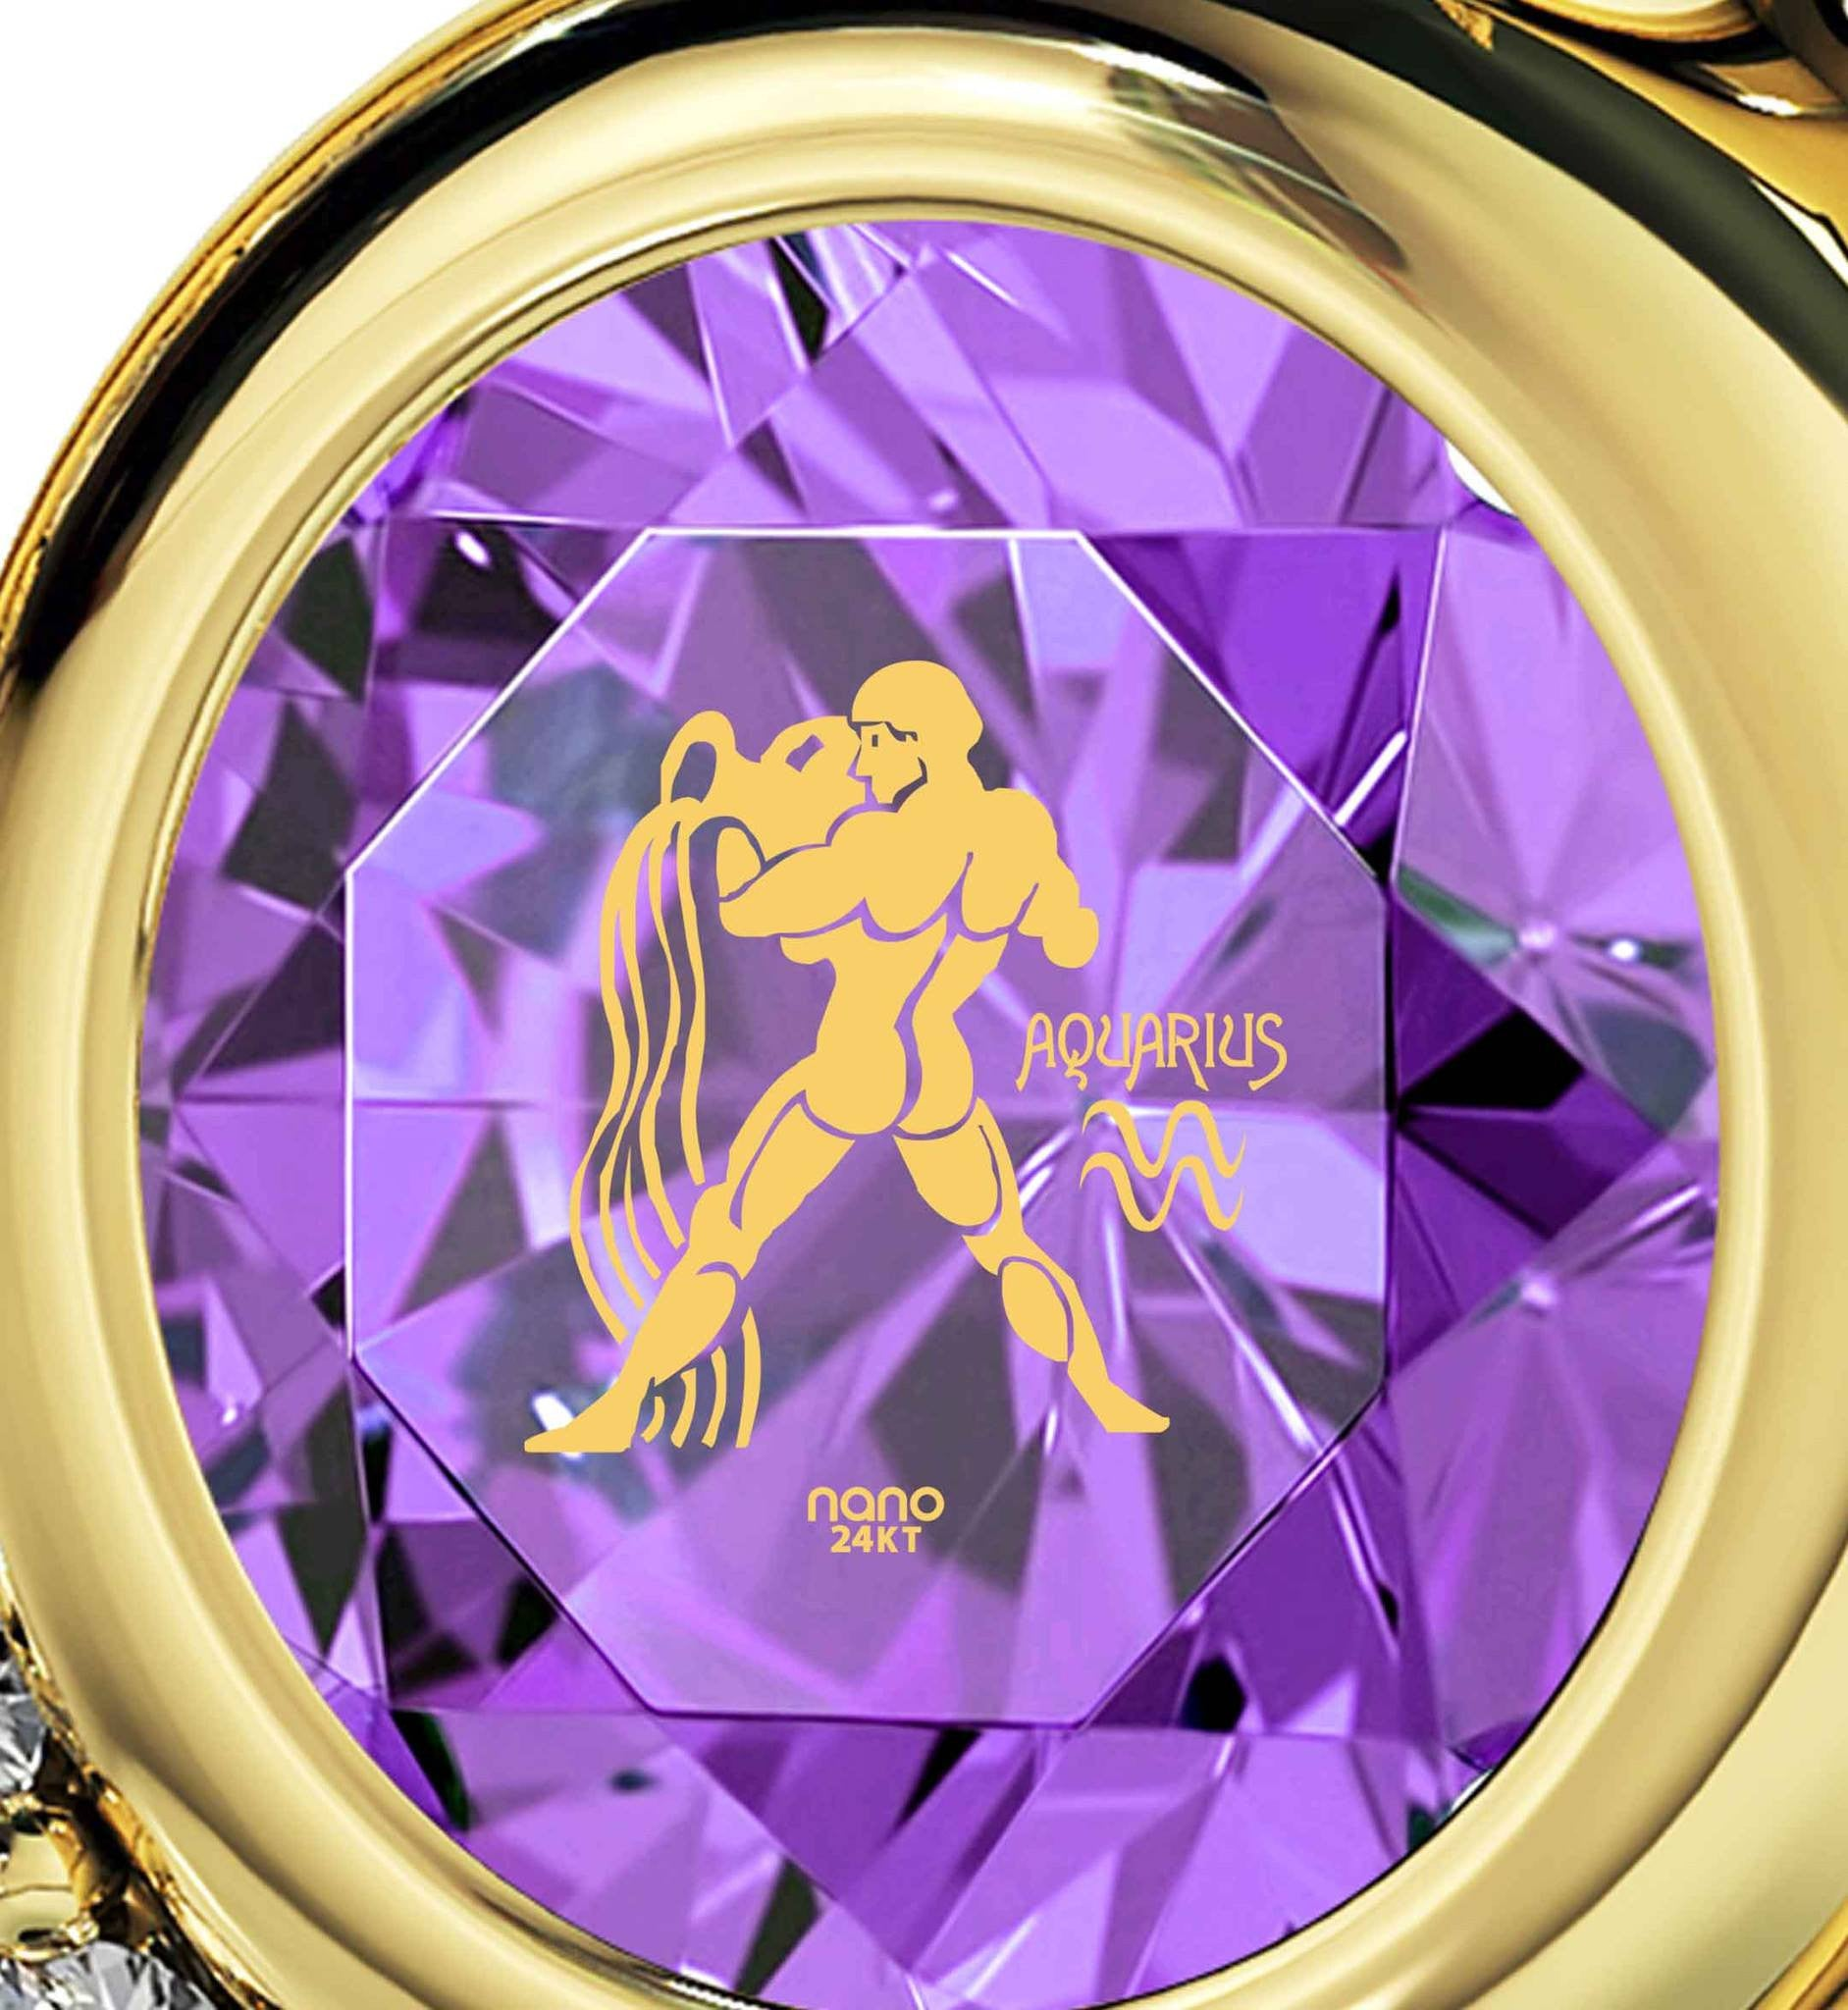 """Aquarius Jewelry With Zodiac Imprint, Top Womens Gifts, What to Get Your Best Friend for Her Birthday, Purple Pendant """